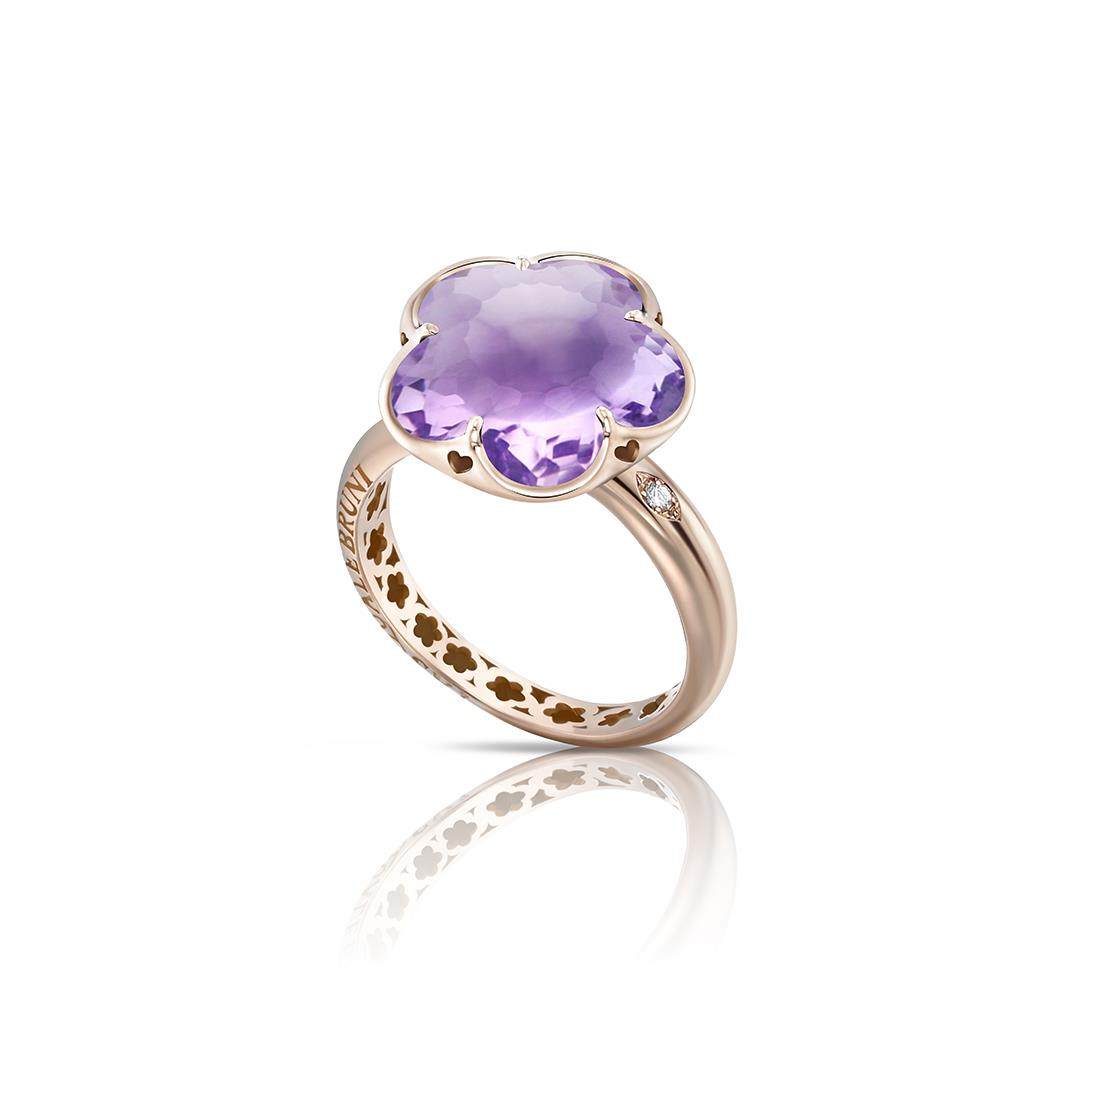 Ring with amethyst - PASQUALE BRUNI